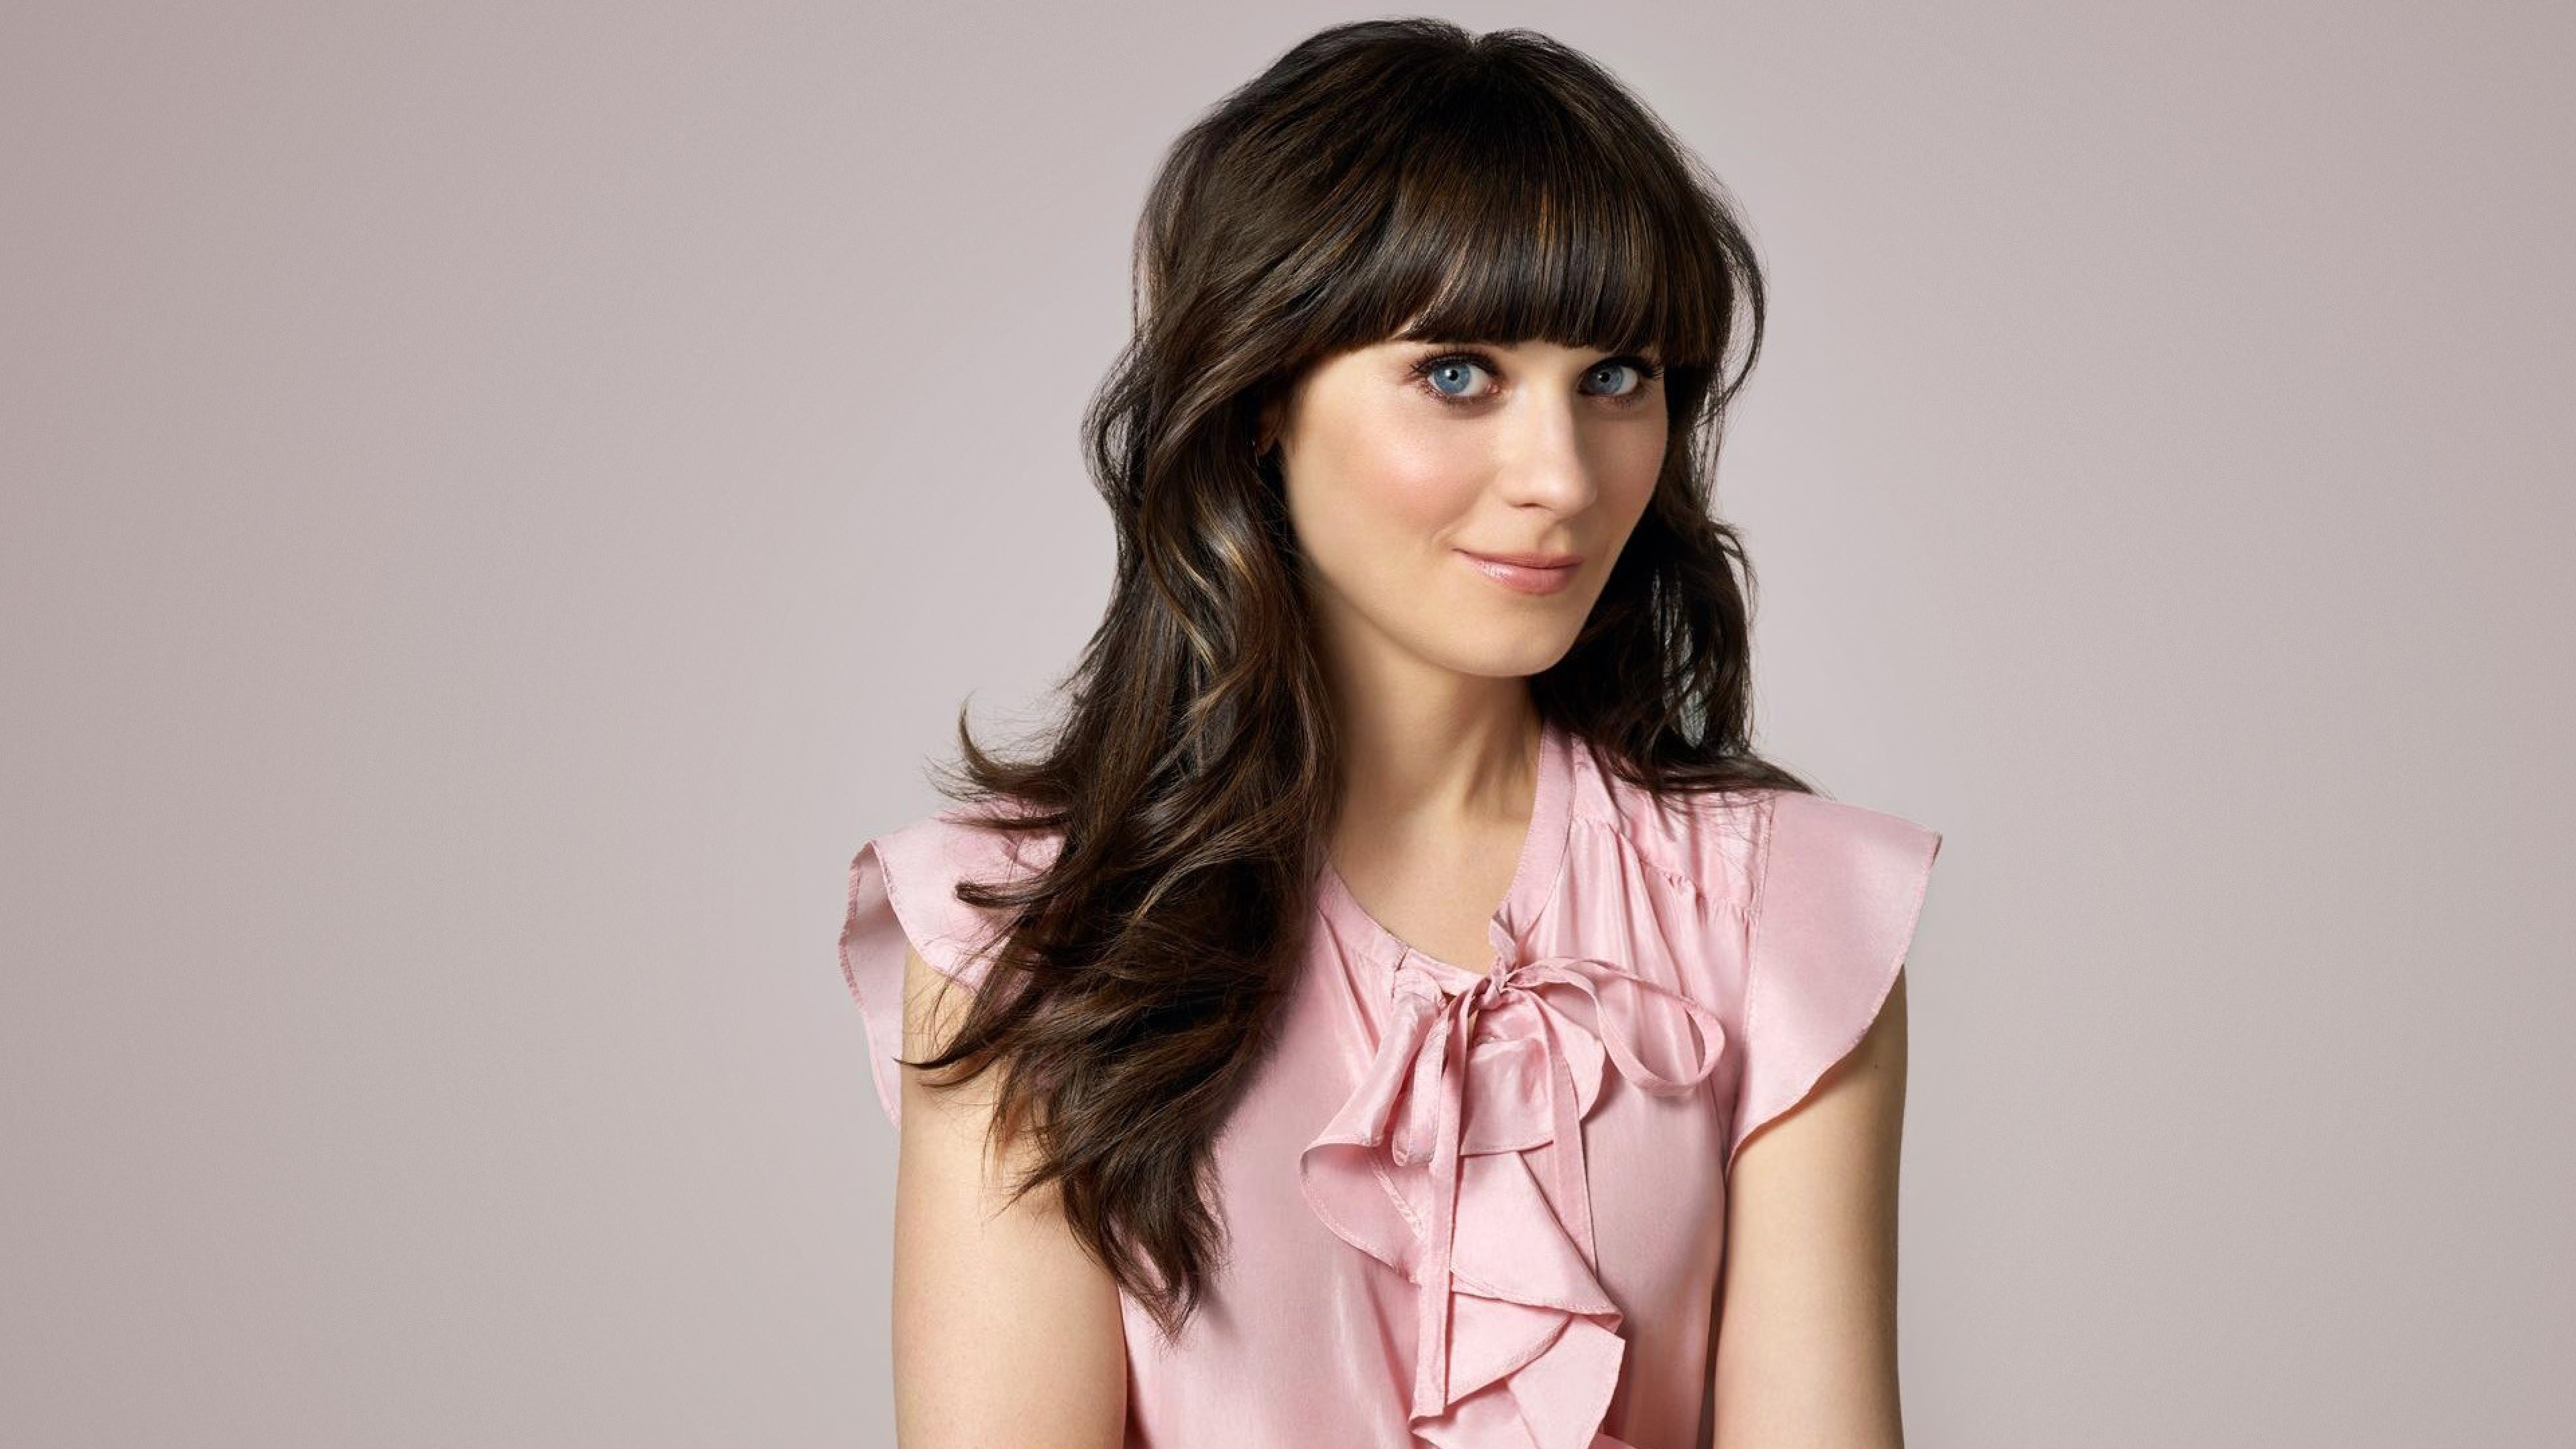 zooey deschanel new girl widescreen computer background 954